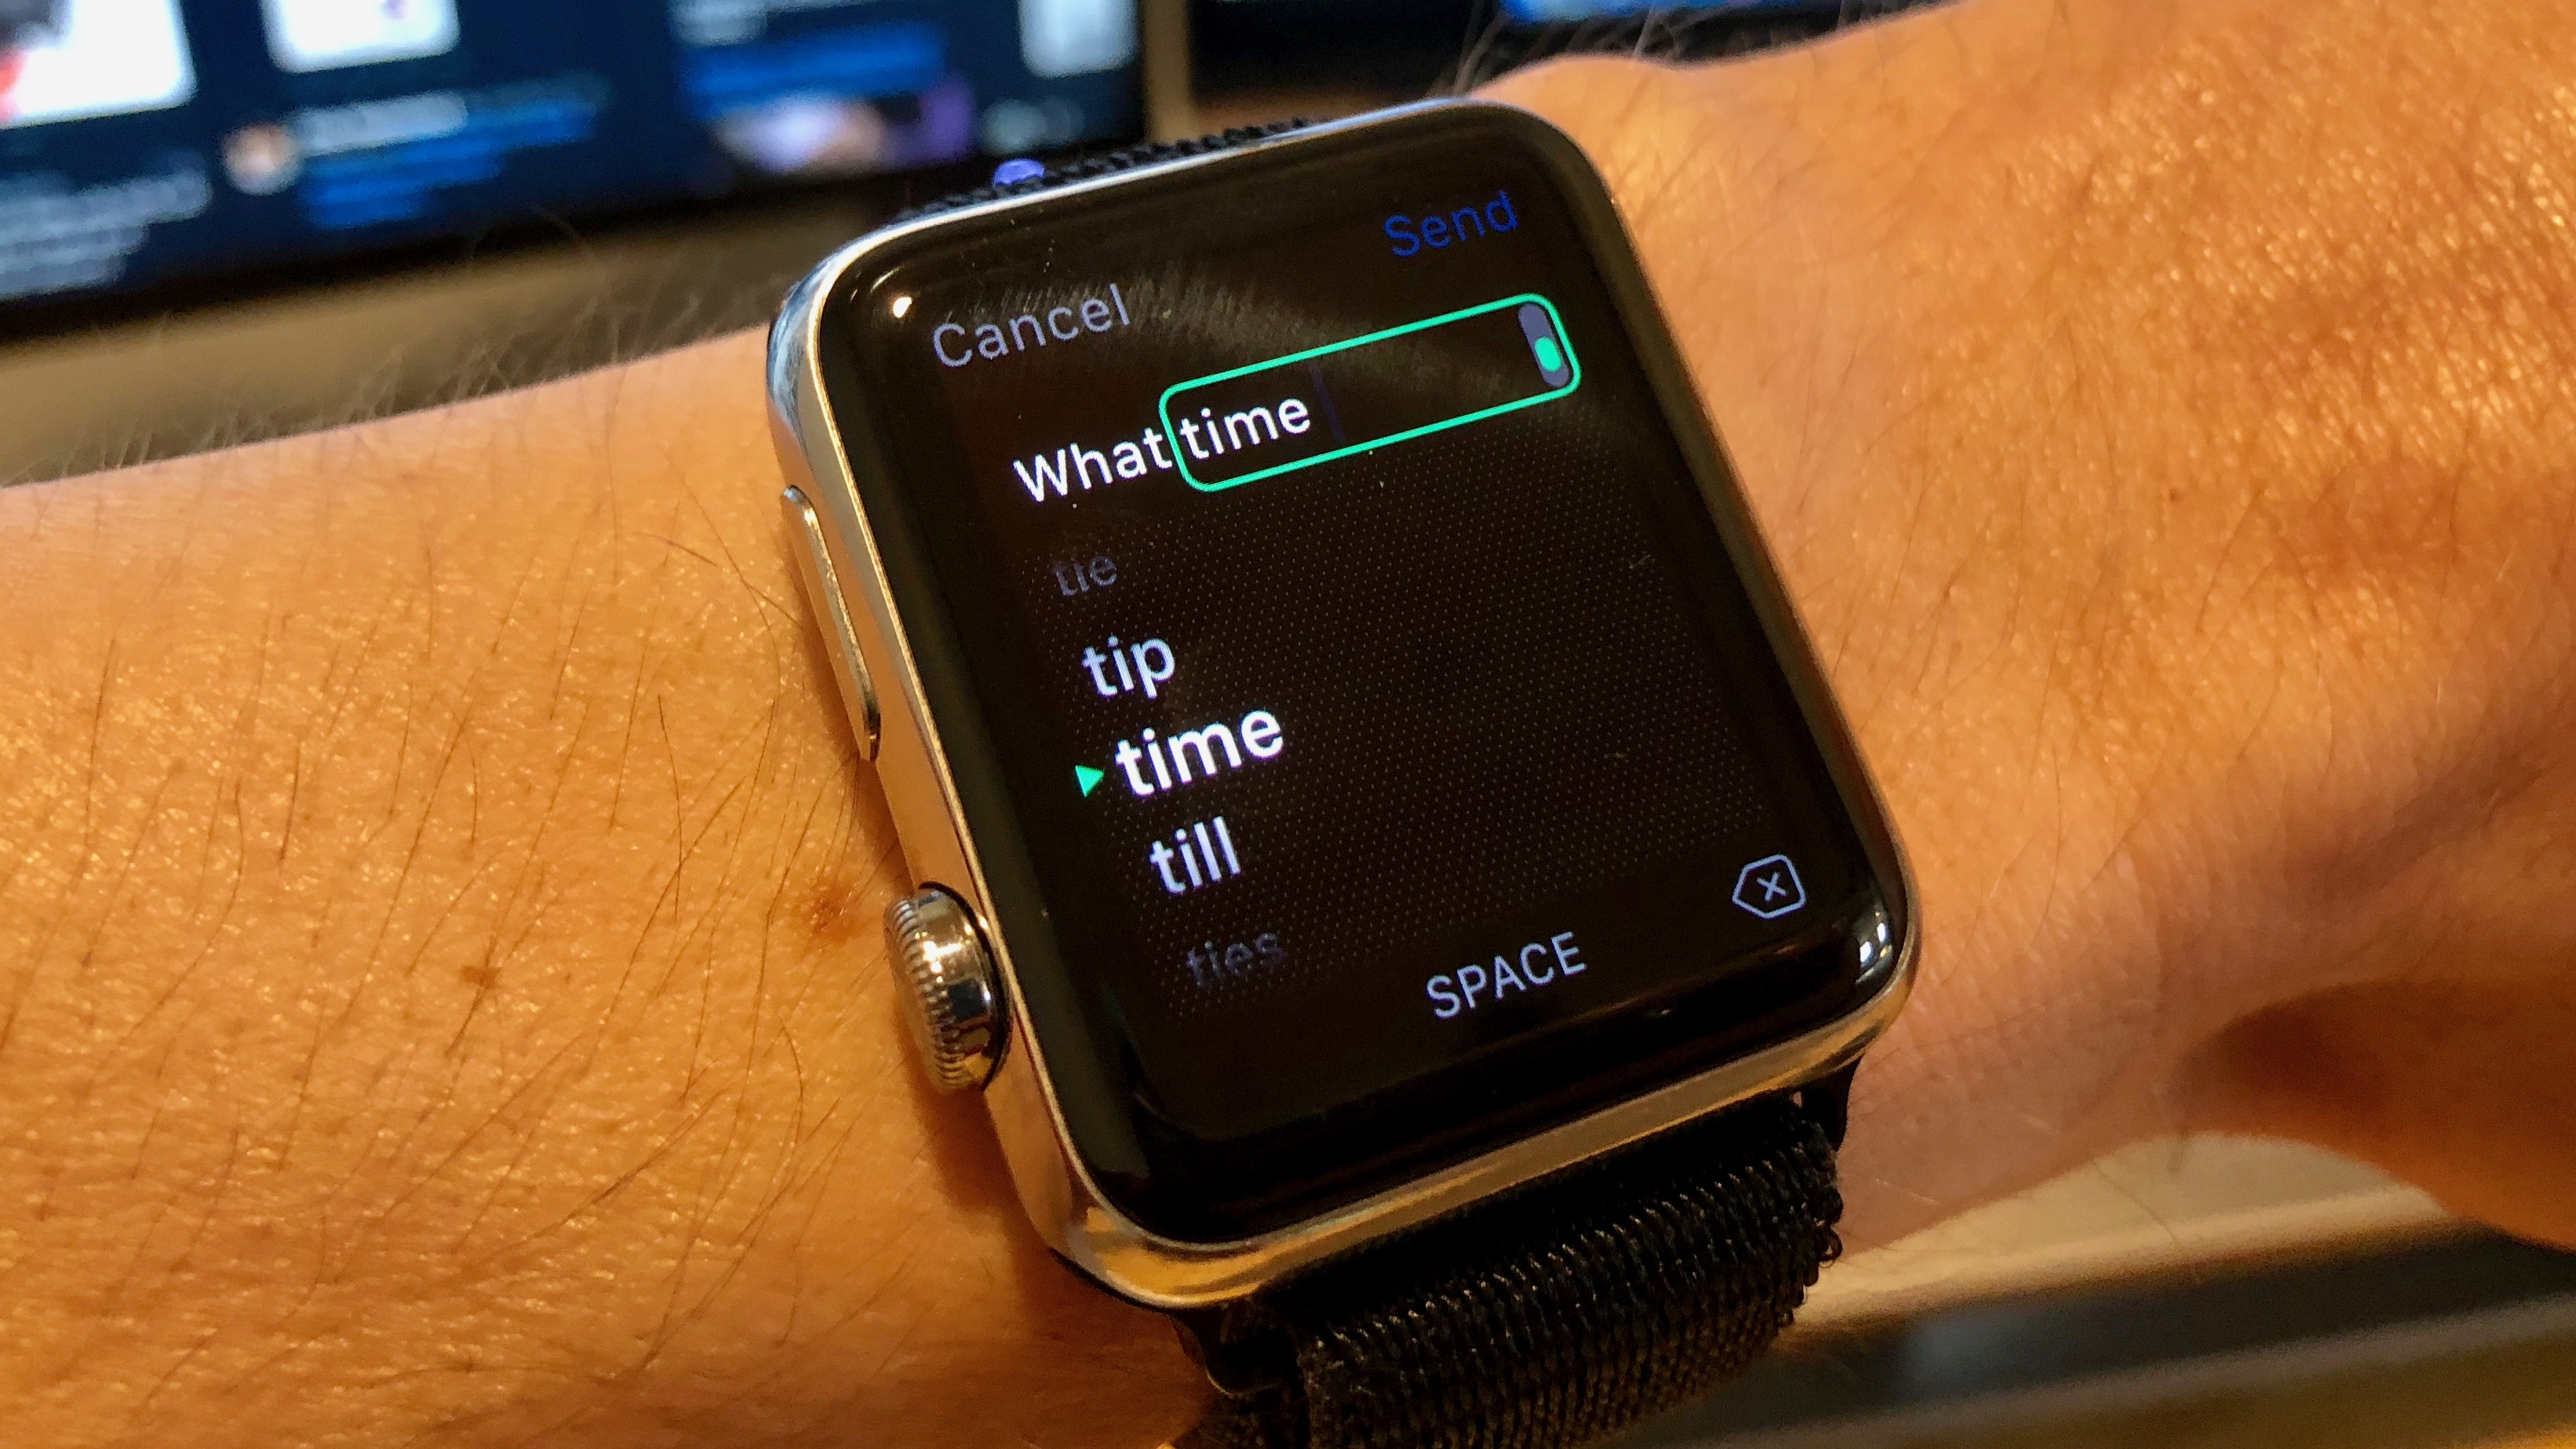 How to use Scribble on Apple Watch to text without voice